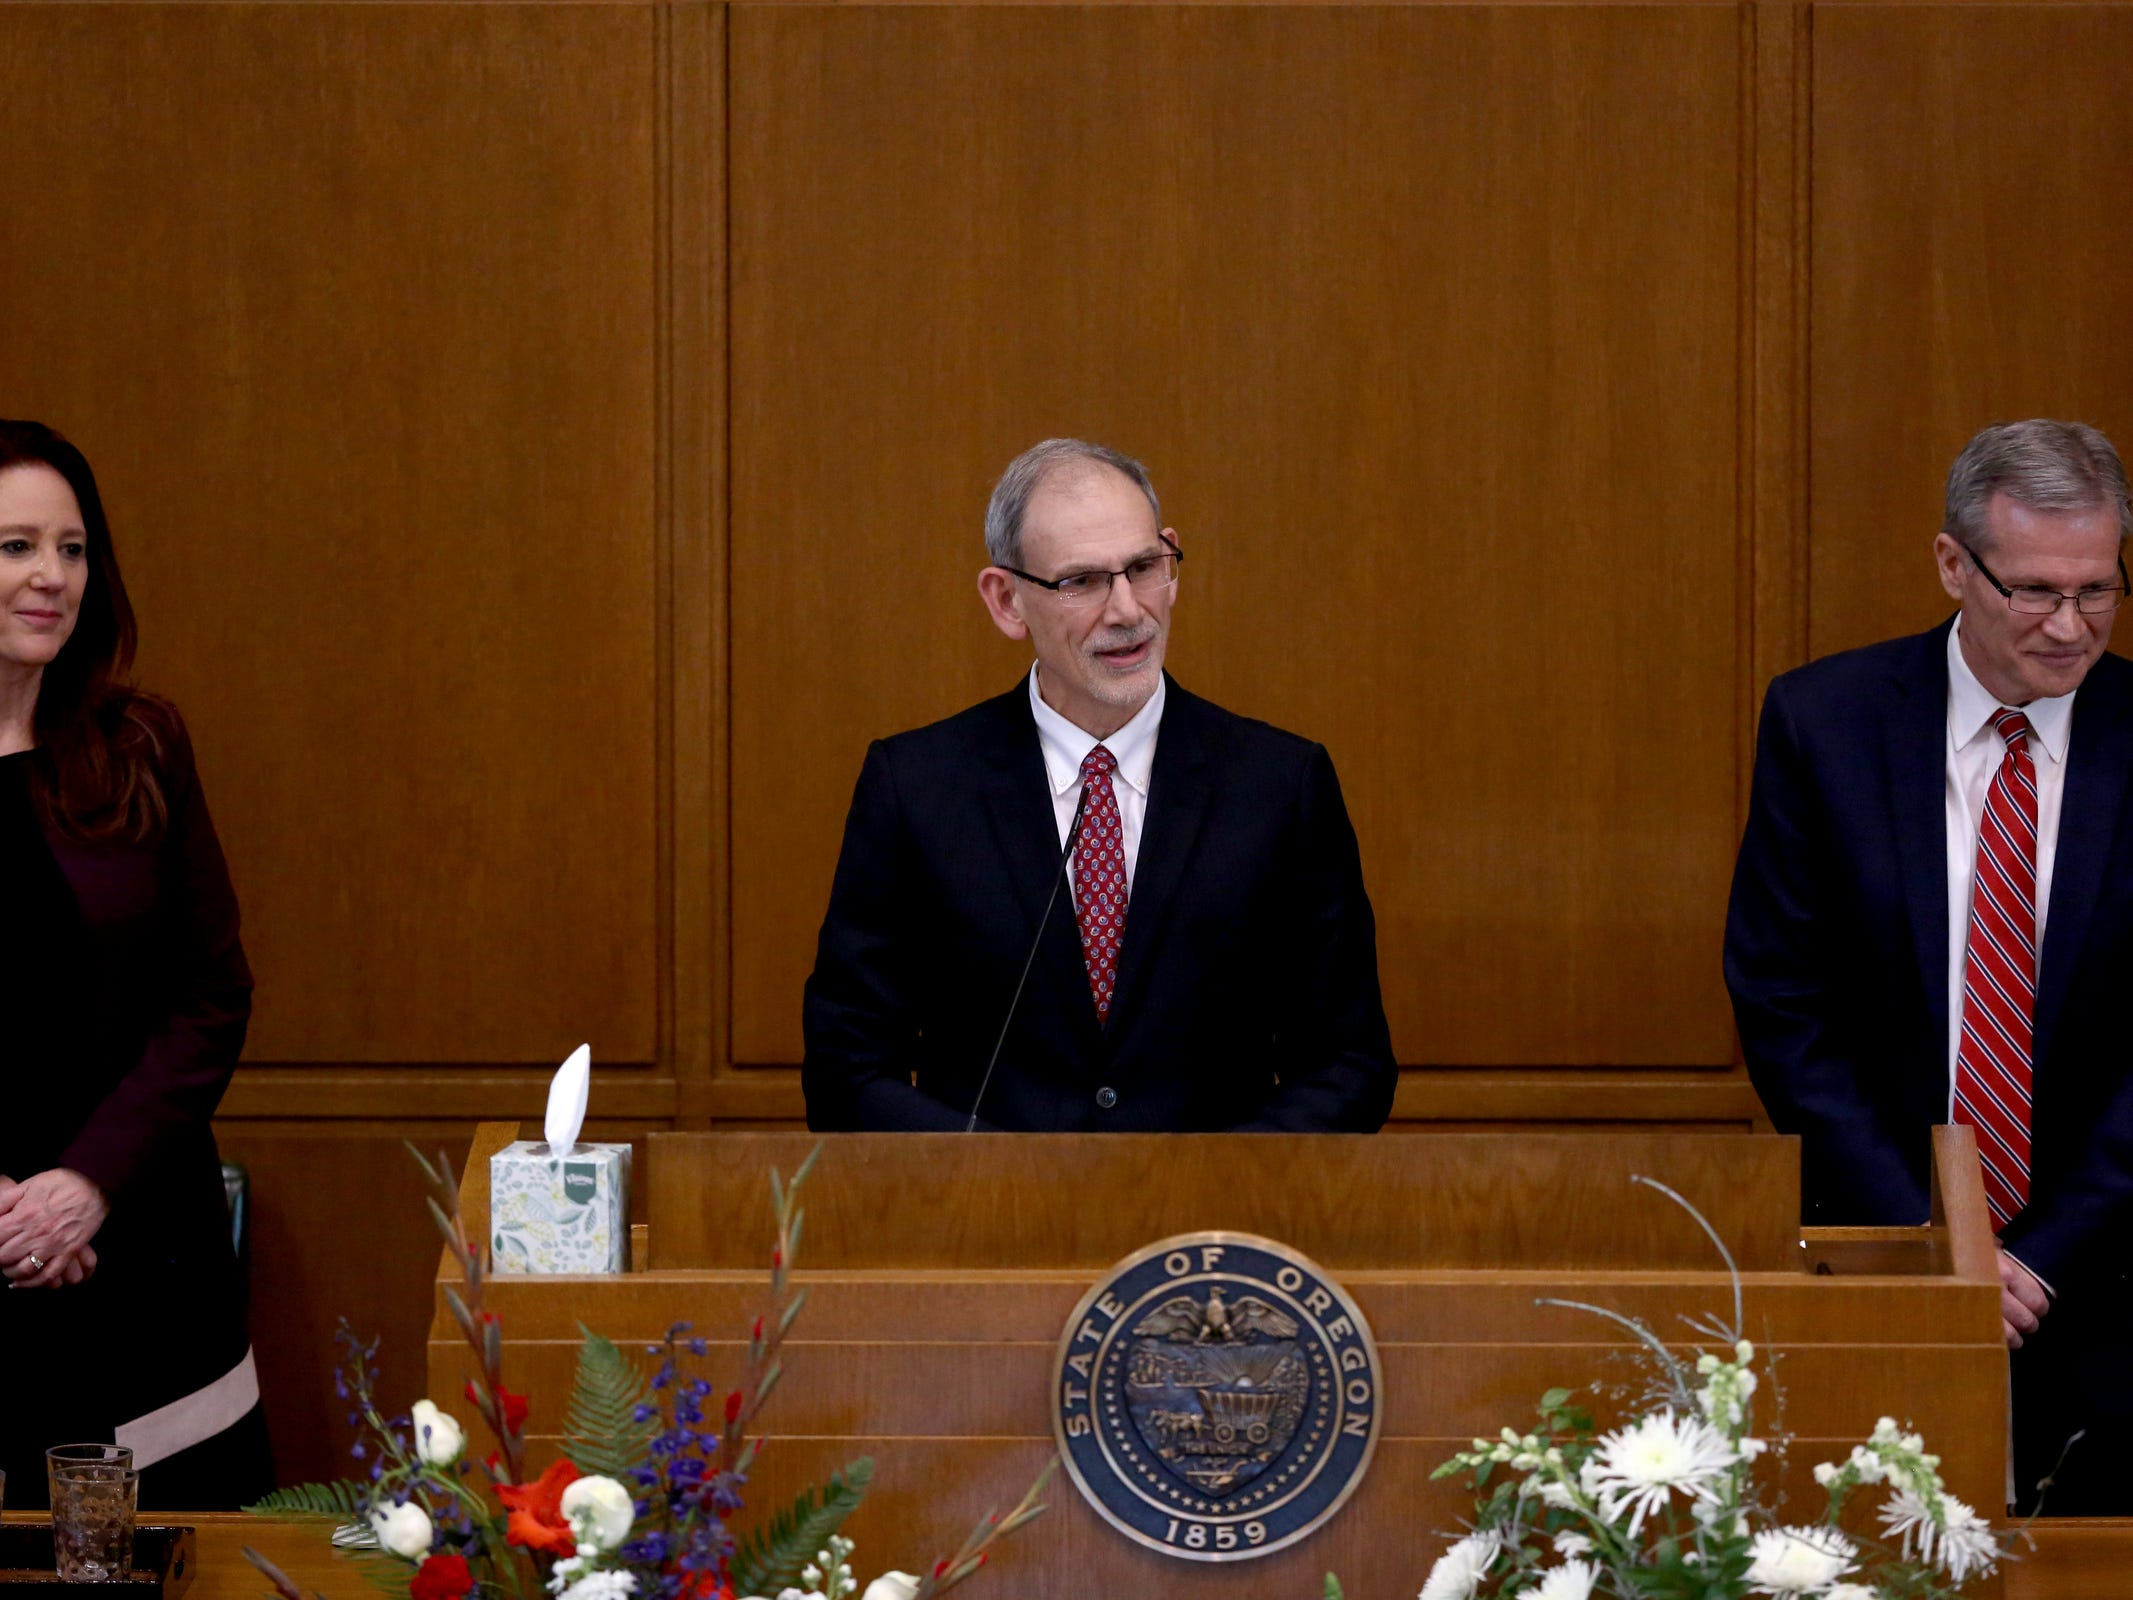 Former Secretary of State Phil Keisling, center, speaks during the state funeral for Secretary of State Dennis Richardson at the Oregon State Capitol in Salem on Wednesday, March 6, 2019.